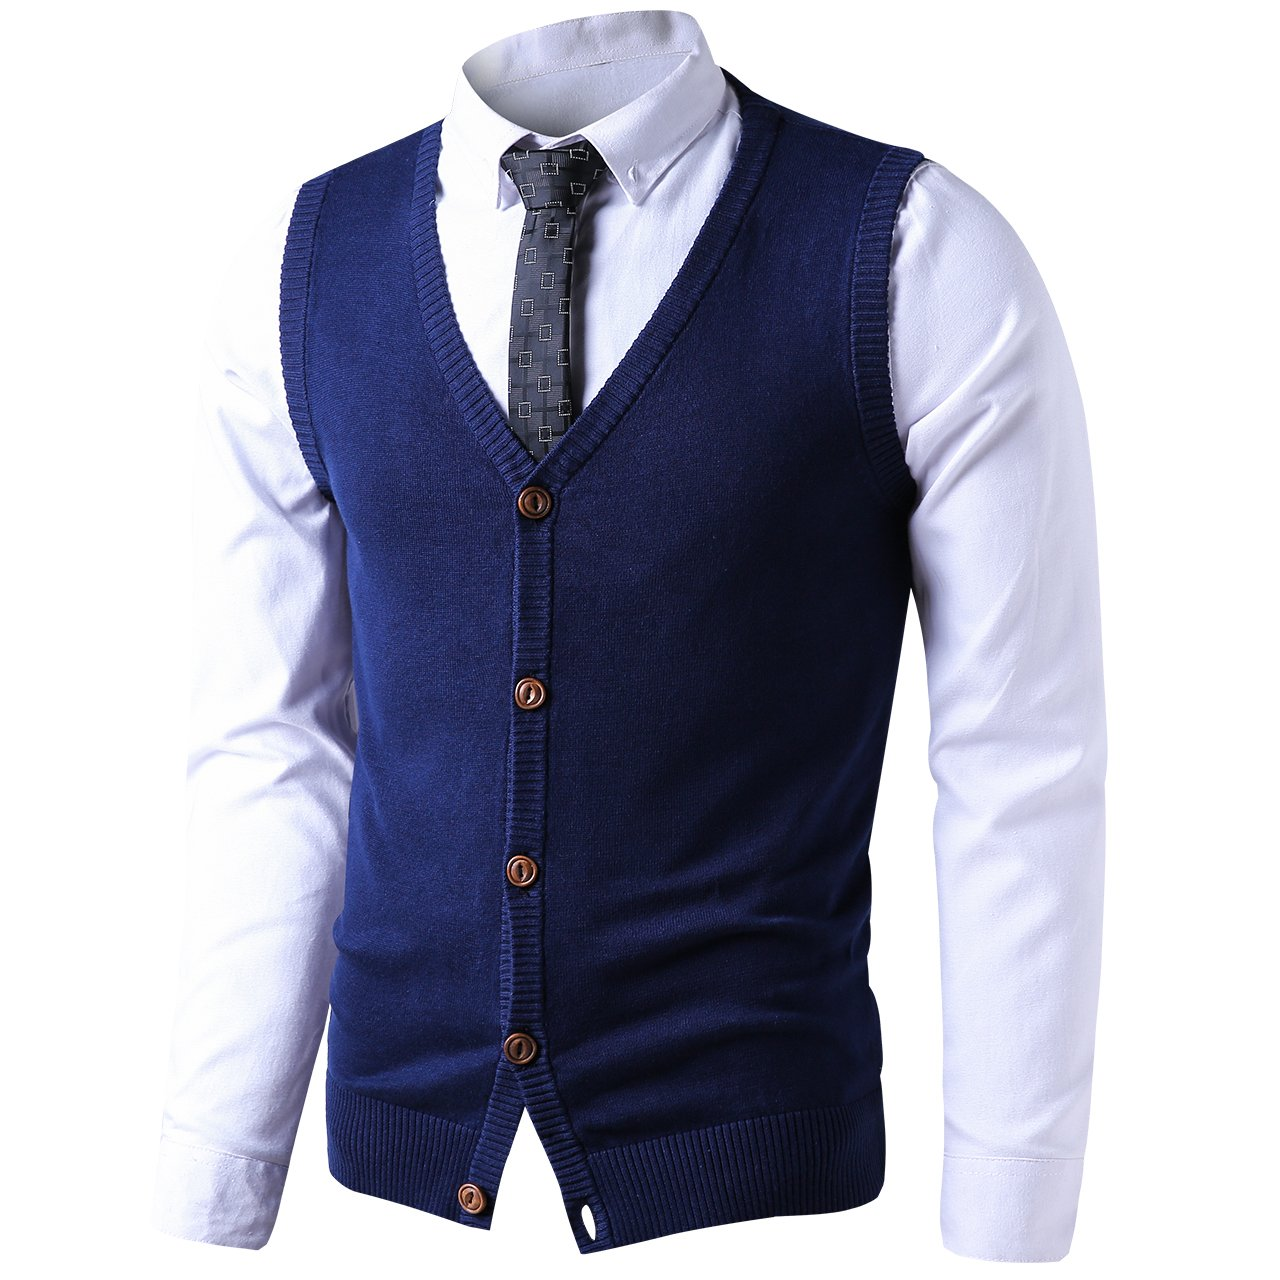 LTIFONE Mens Button Down Sweater Vest Basic Plain Short Sleeve Sweater Cardigan Sweaters Slim Fit with Ribbing Edge(Blue,L)